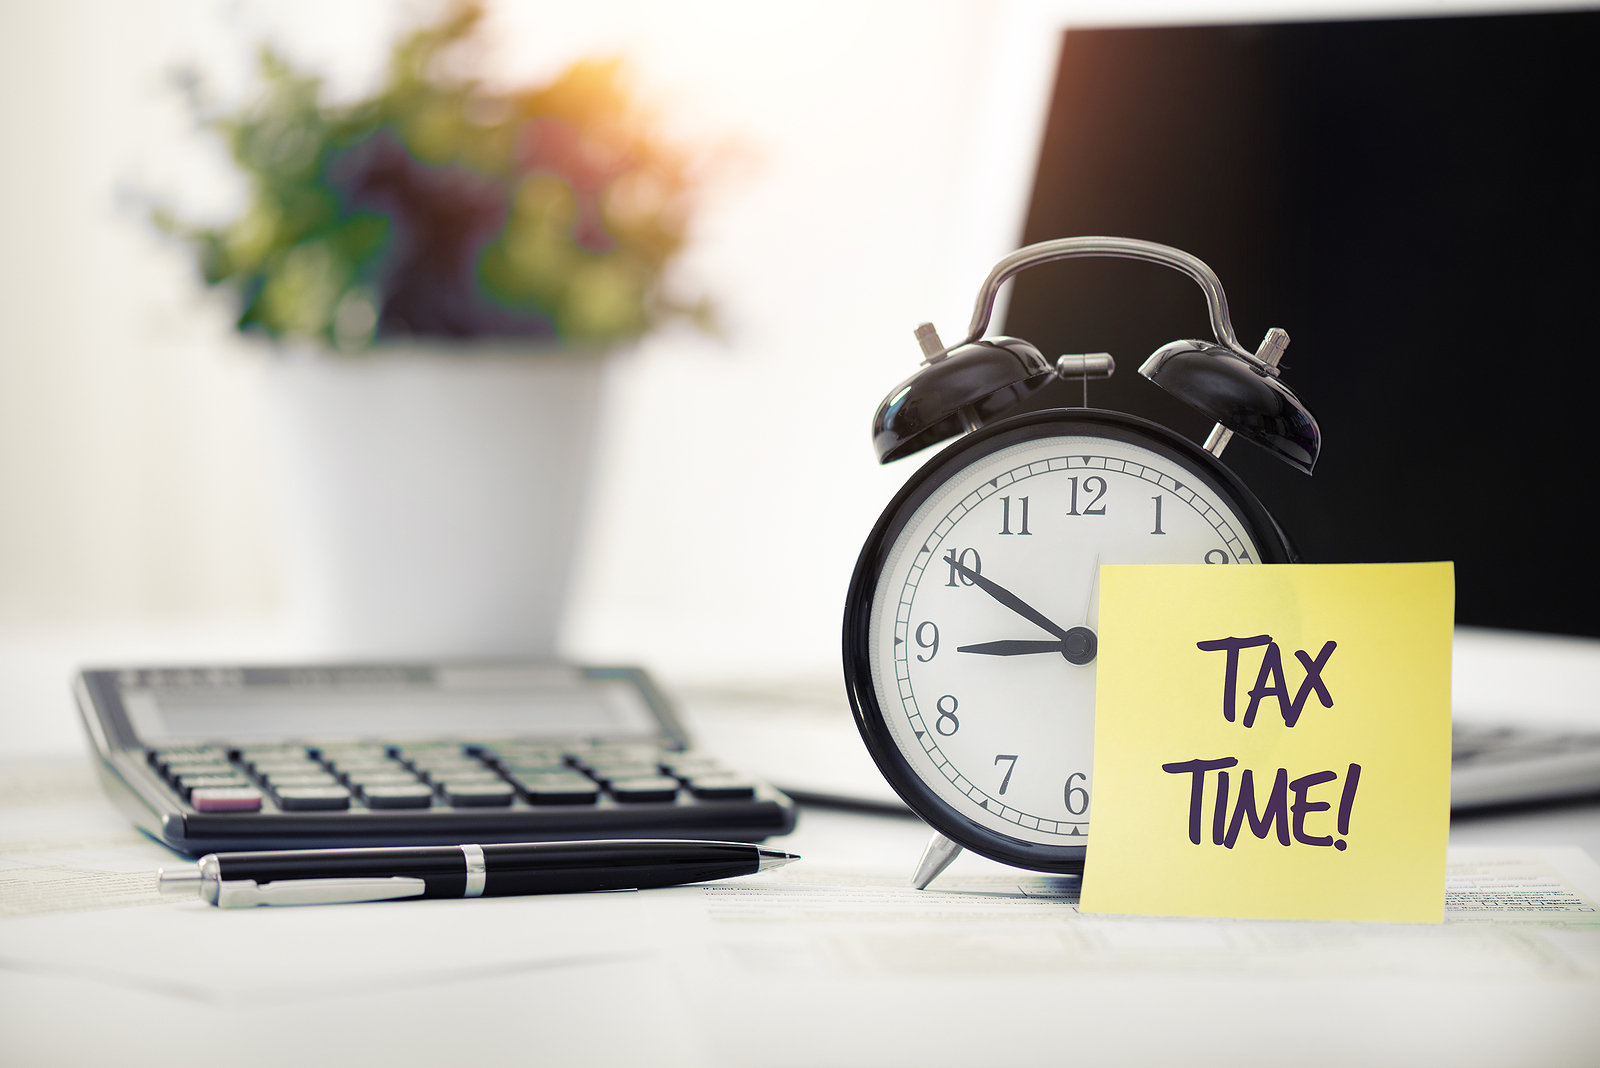 Taxes: Why Do I Owe A Penalty And What Can I Do About It?